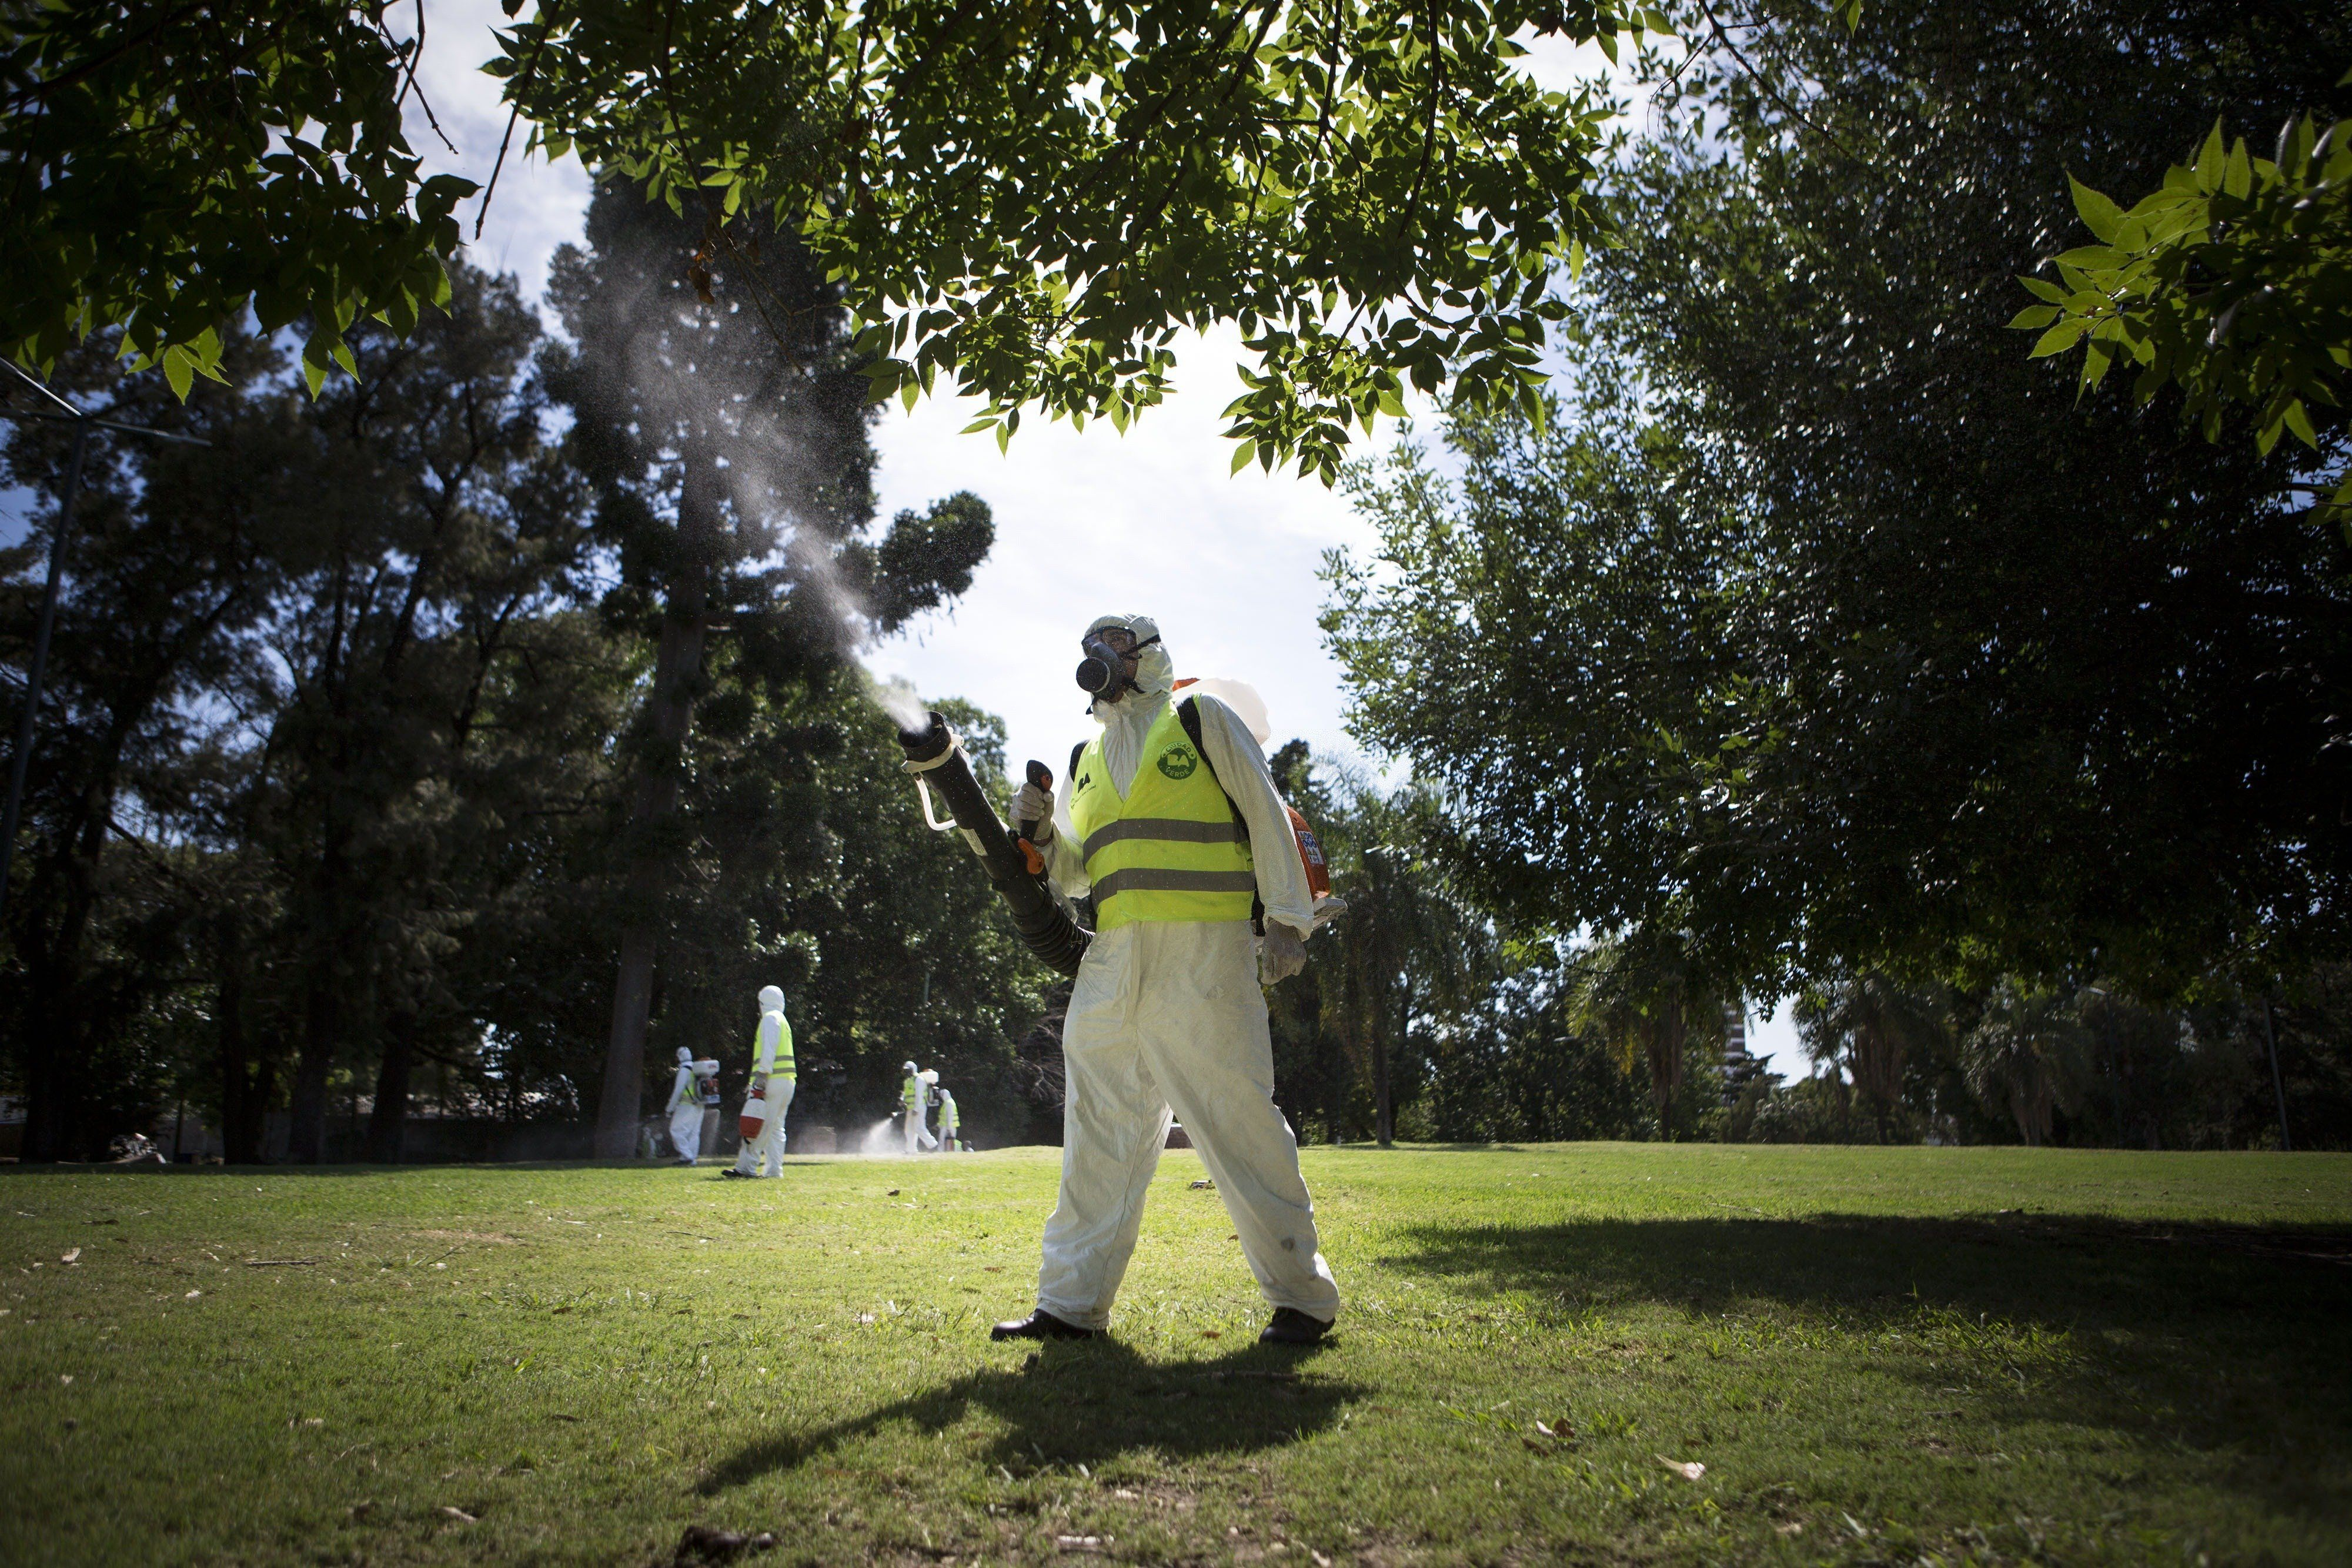 BUENOS AIRES, Feb. 11, 2016 -- Argentina's Environment and Public Space Ministry fumigation brigade members spay insecticide in an area of Saavedra Park, in an effort to control the Aedes aegypti mosquito, in Buenos Aires, capital of Argentina, on Feb. 11, 2016. (Xinhua/Martin Zabala via Getty Images)